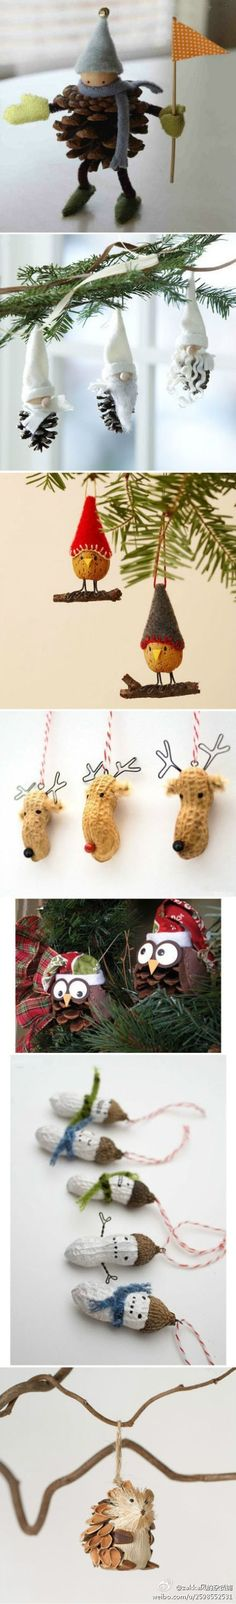 Pine cone decorations for Christmas #DIY #owls #gnomes